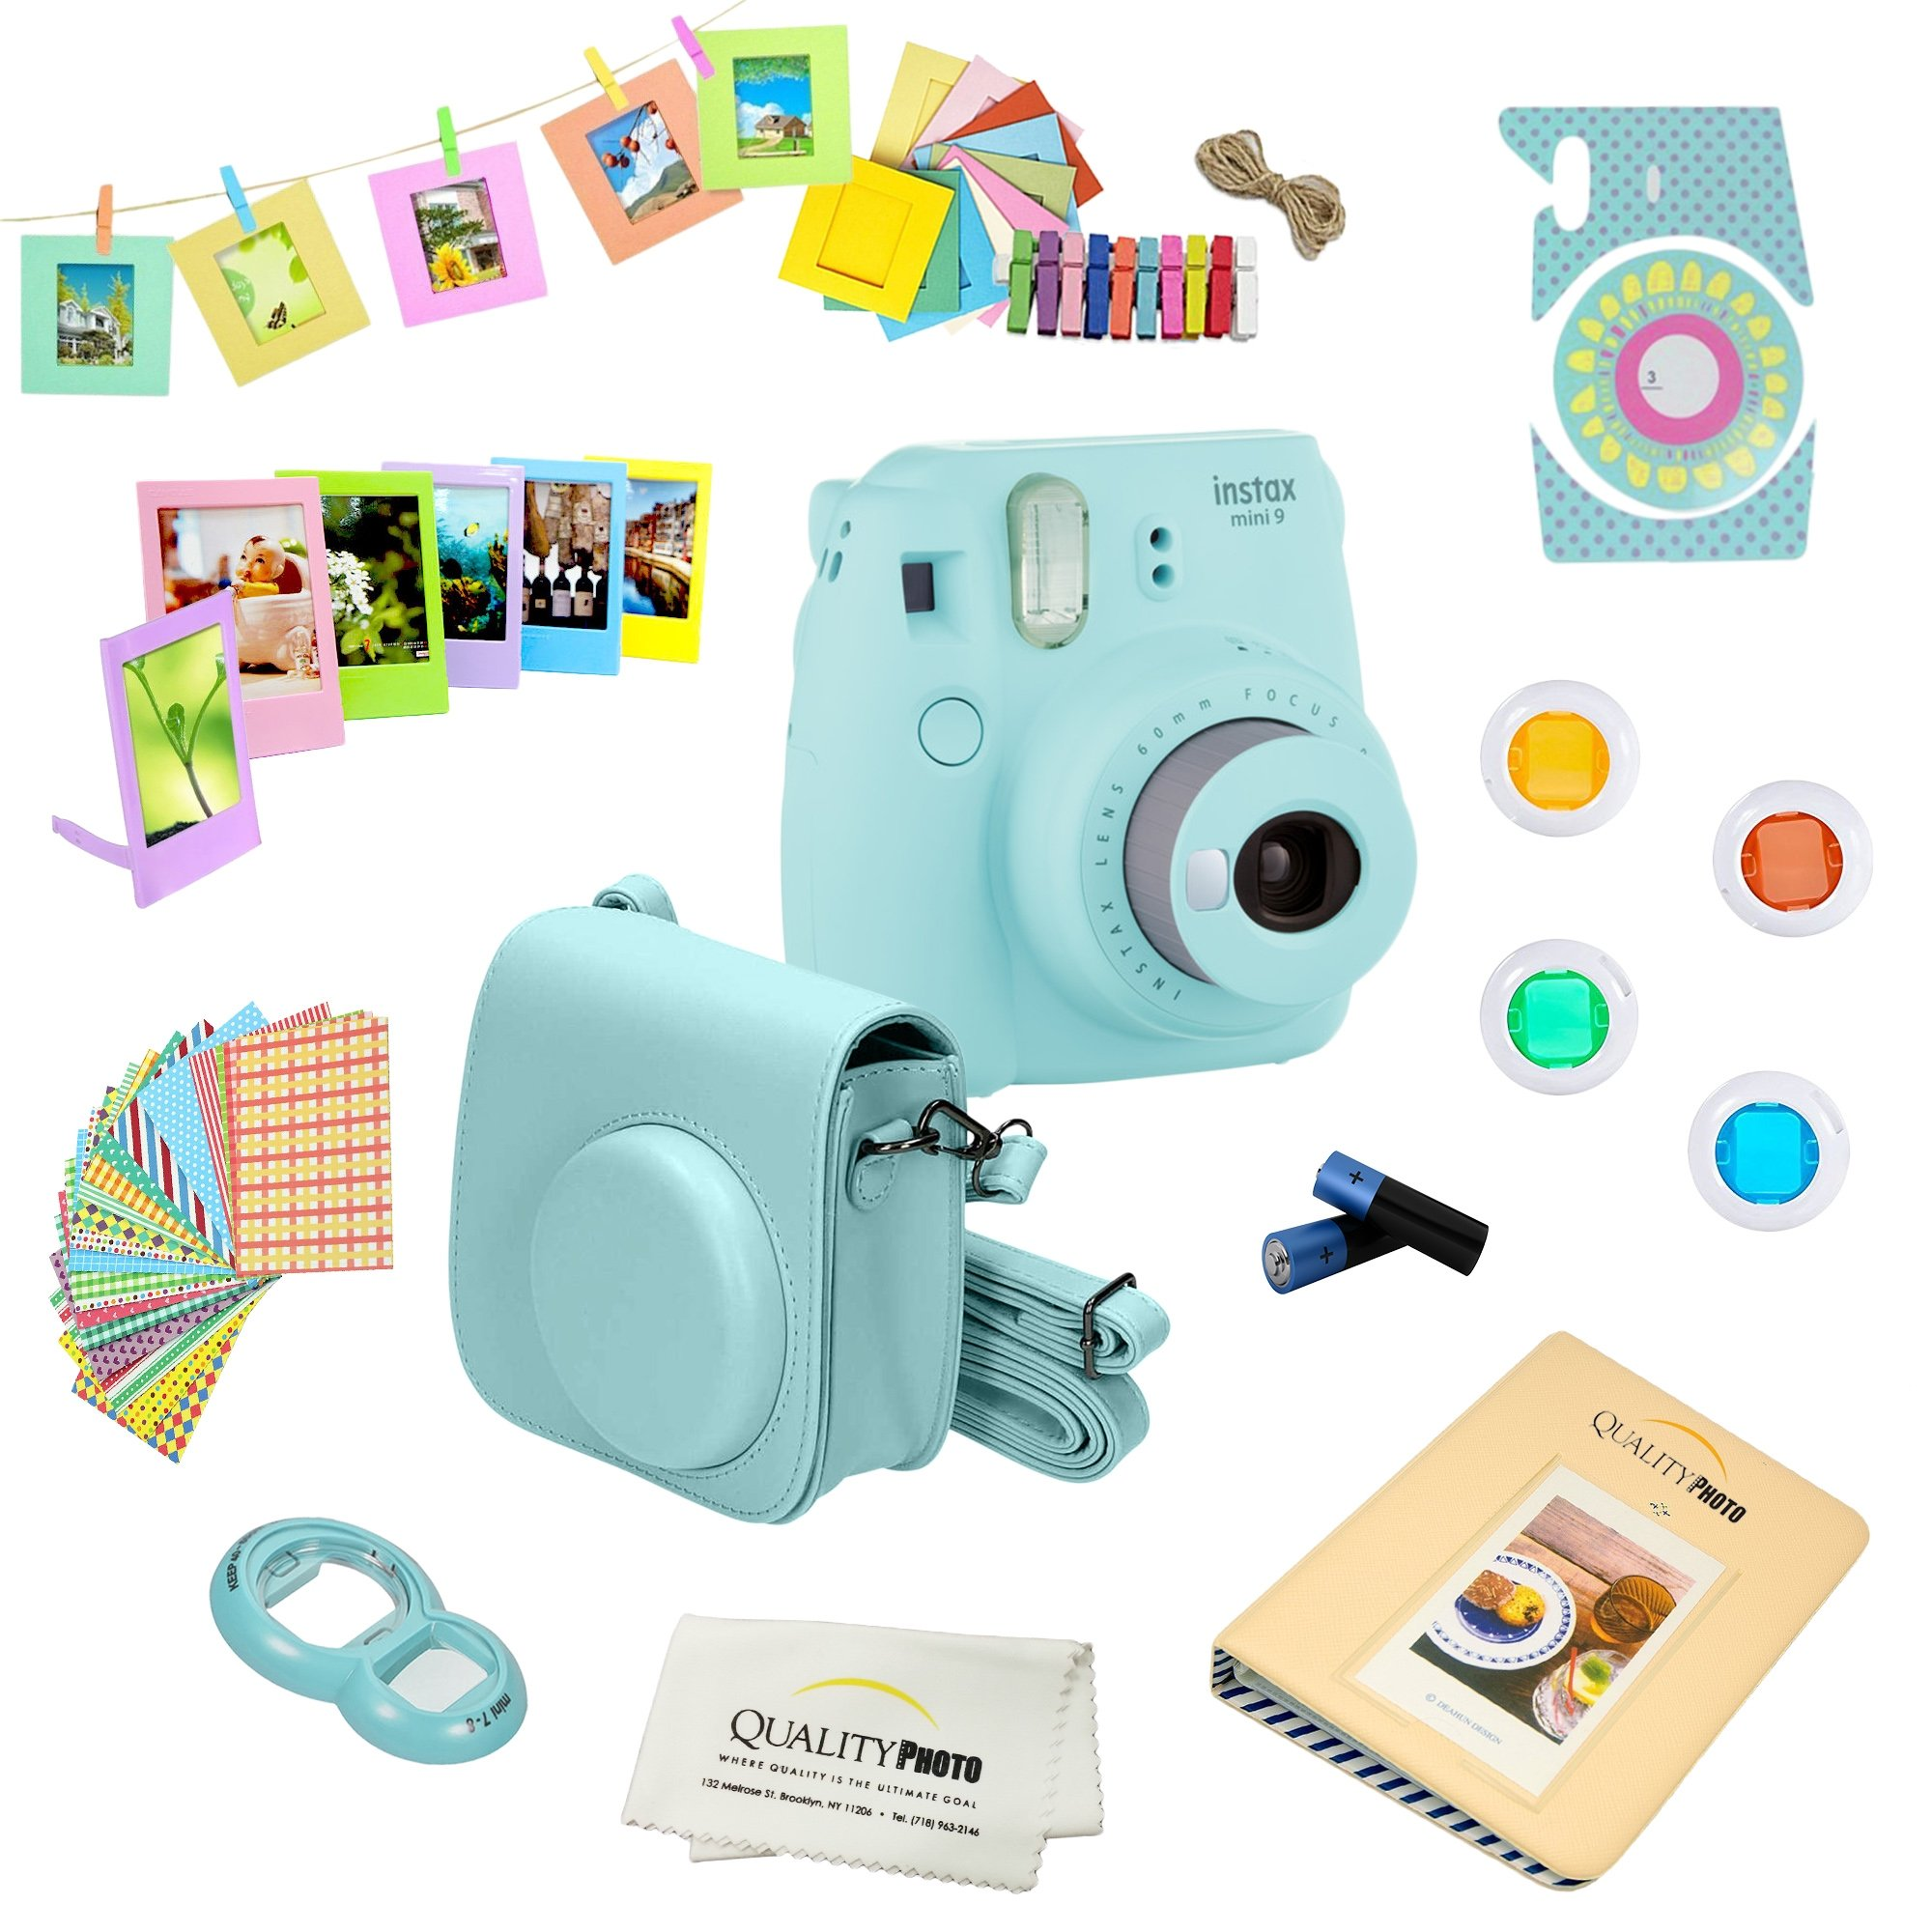 Fujifilm Instax Mini 9 Camera + 14 PC Instax Accessories kit Bundle, Includes; Instax Case + Album + Frames & Stickers + Lens Filters + MORE (Ice Blue) by Fujifilm